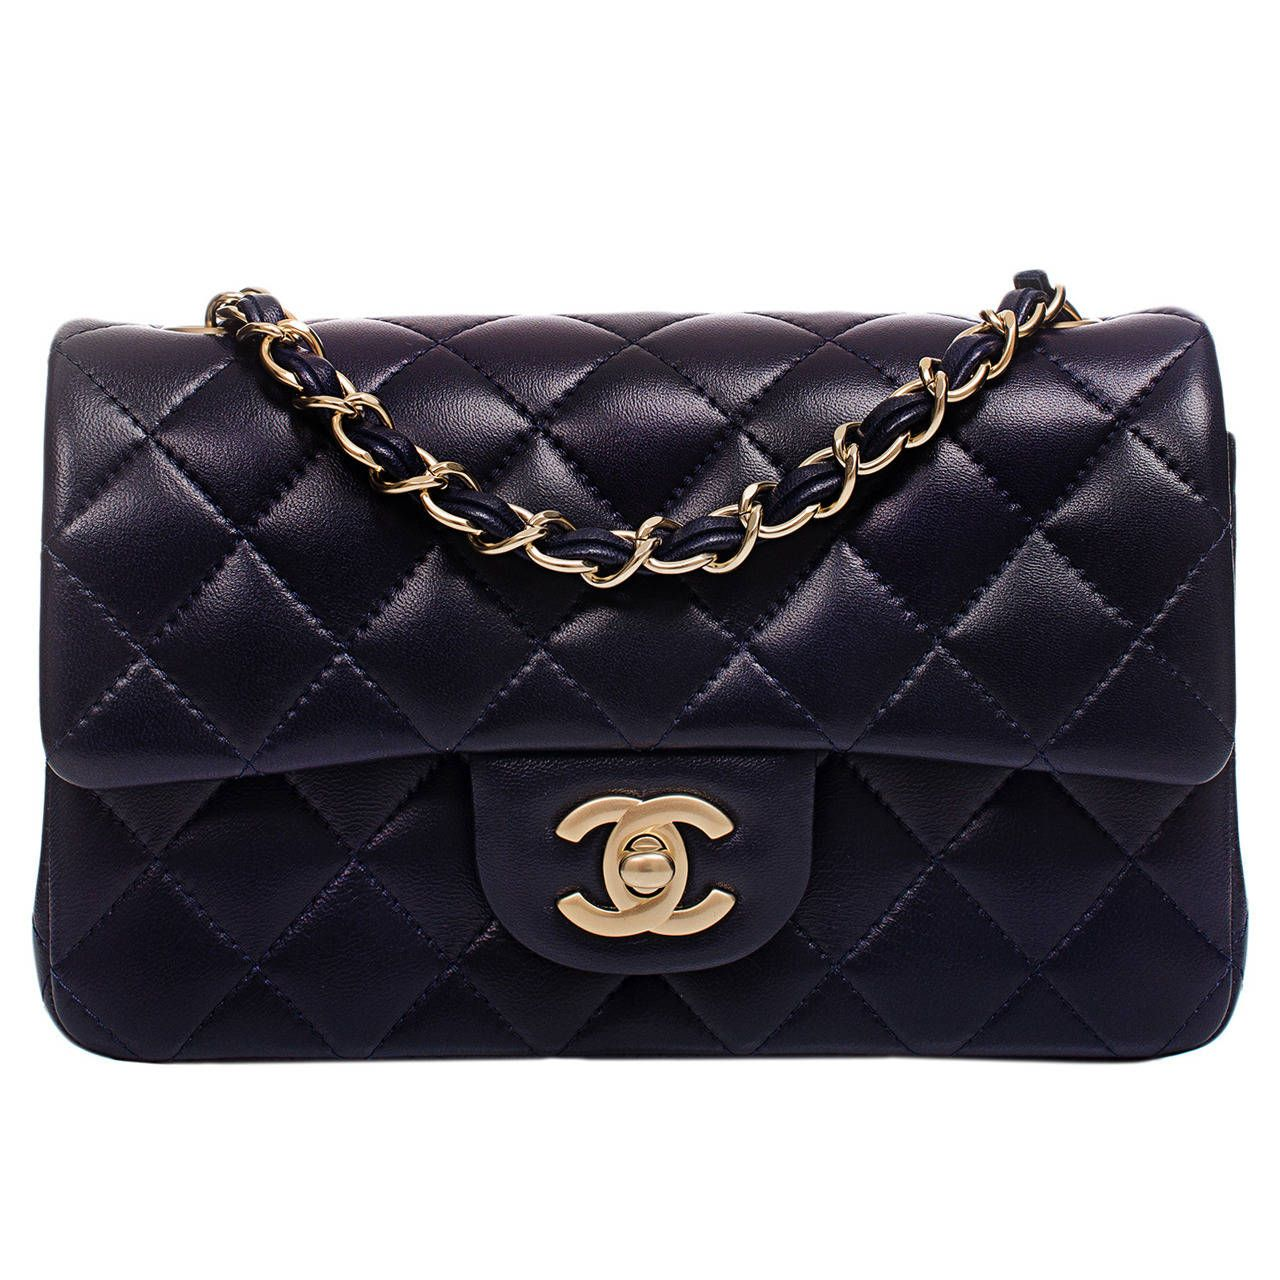 Chanel Navy Quilted Lambskin Small Classic 2 55 Flap Bag From A Collection Of Rare Vintage Handbags Chanel Small Classic Chanel Bag Classic Chanel Small Bag